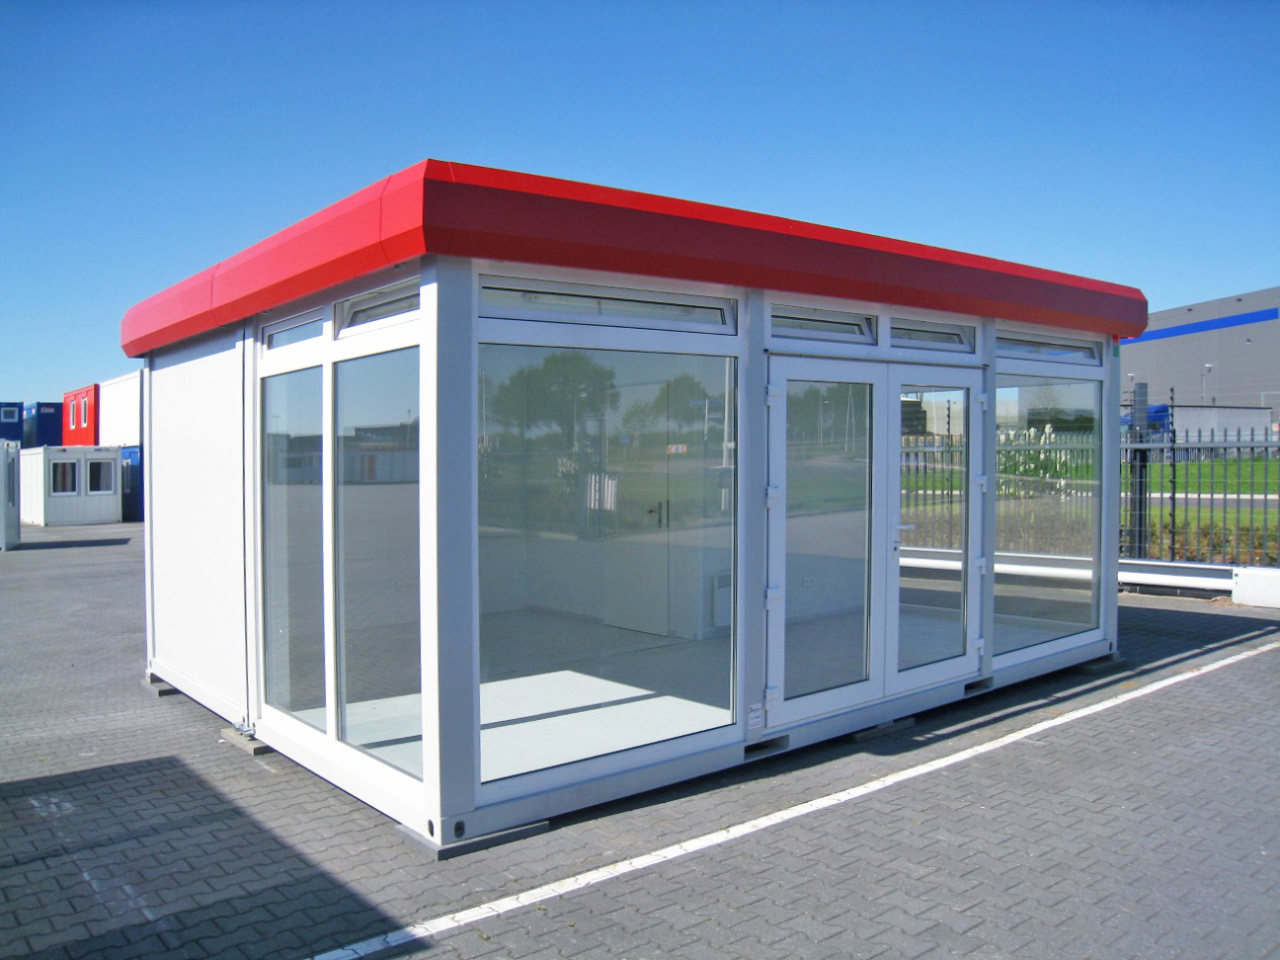 large red and white portable retail cabins in car park with red roof